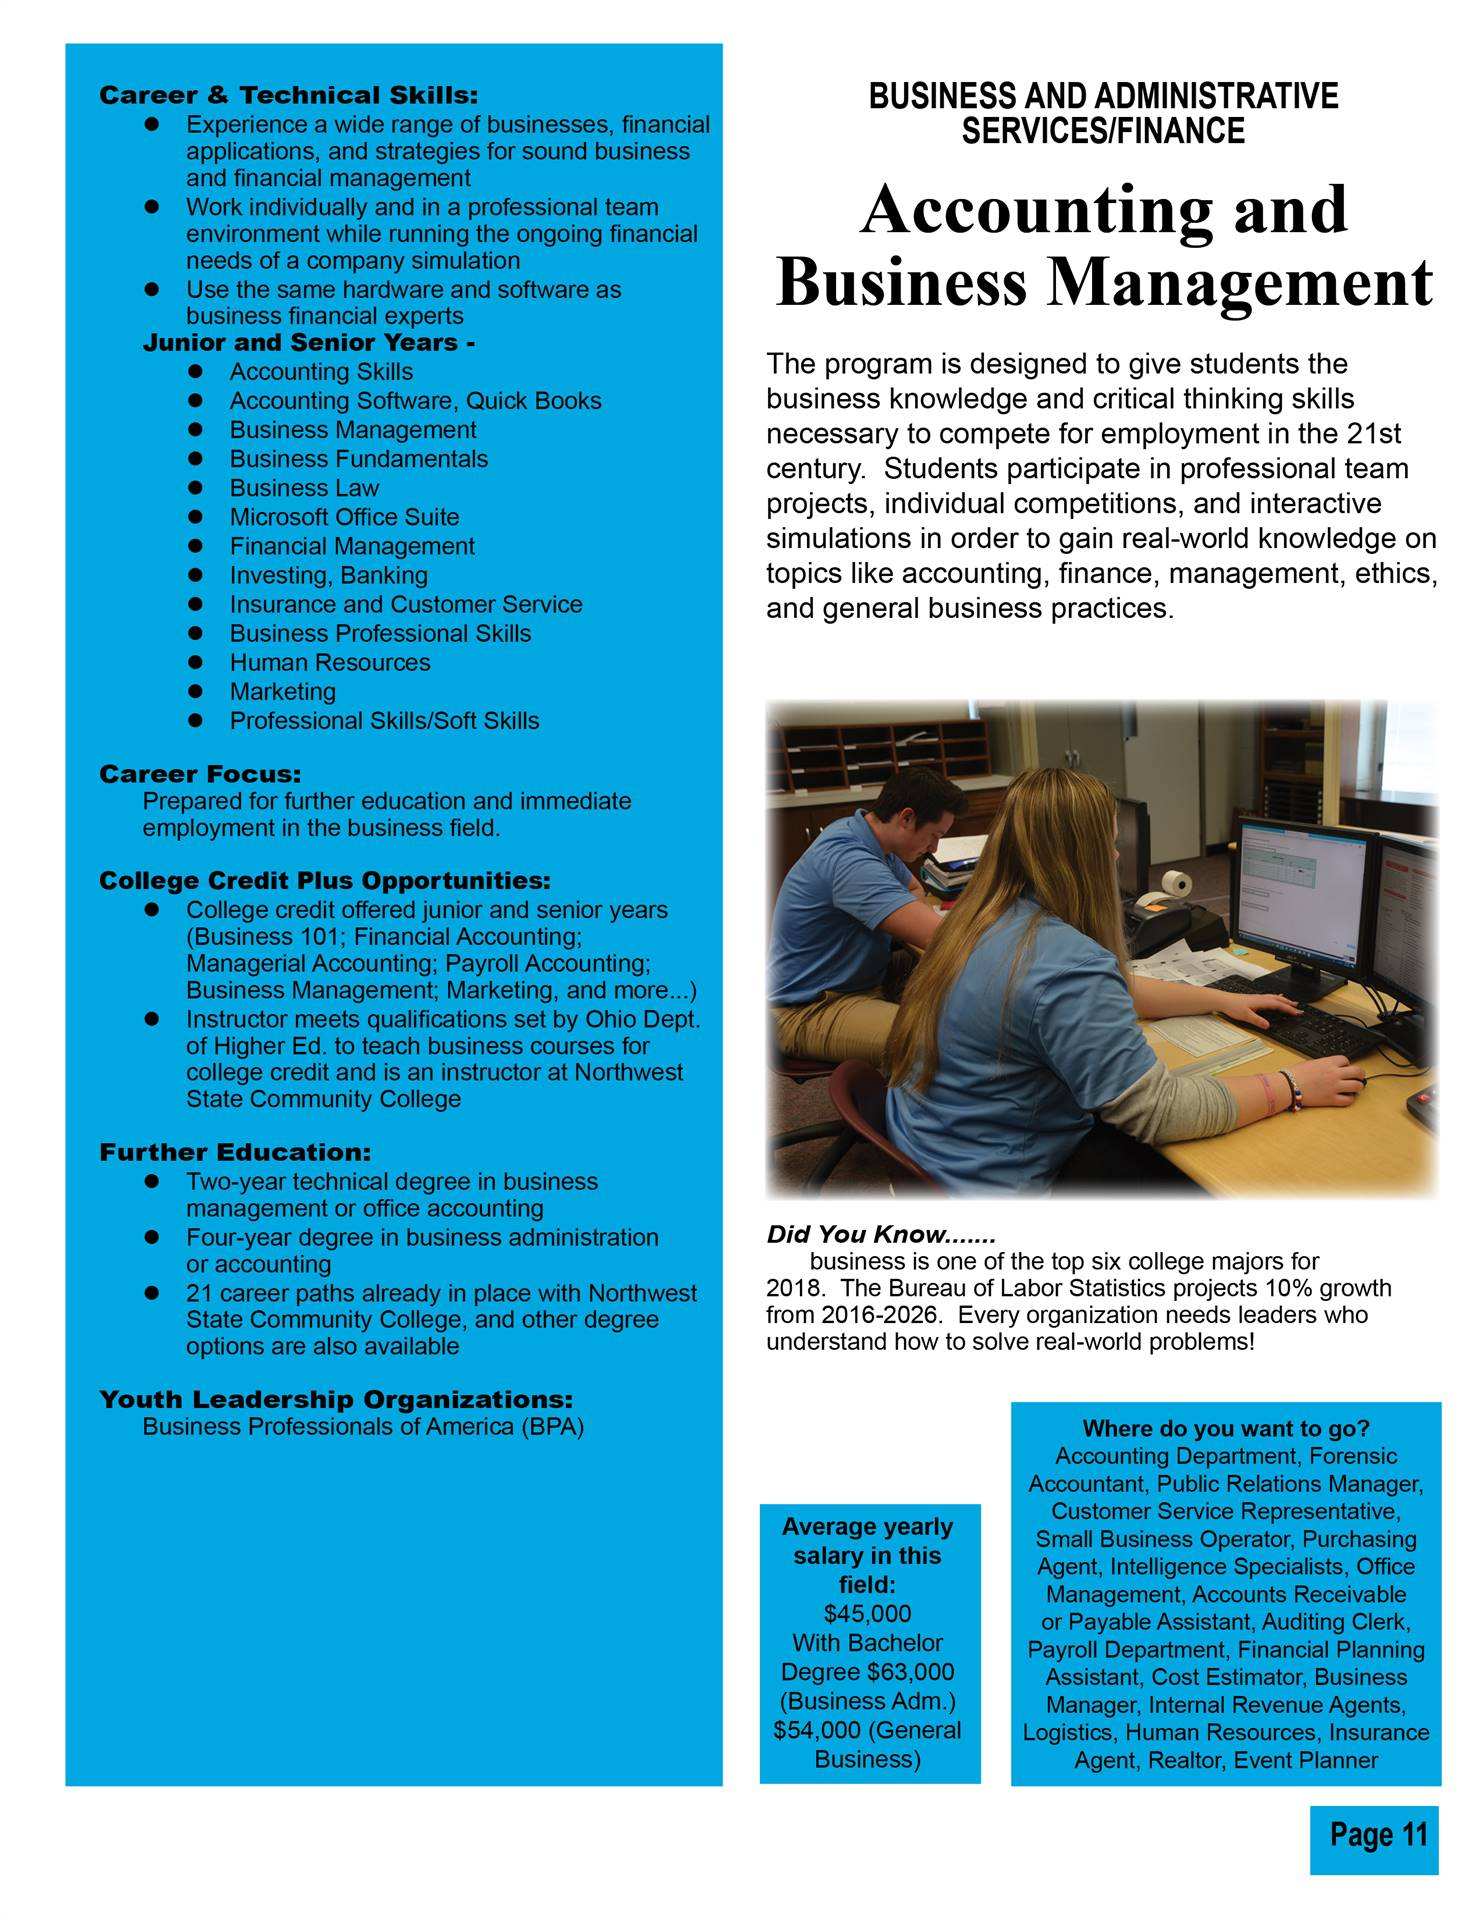 Accounting and Business Management